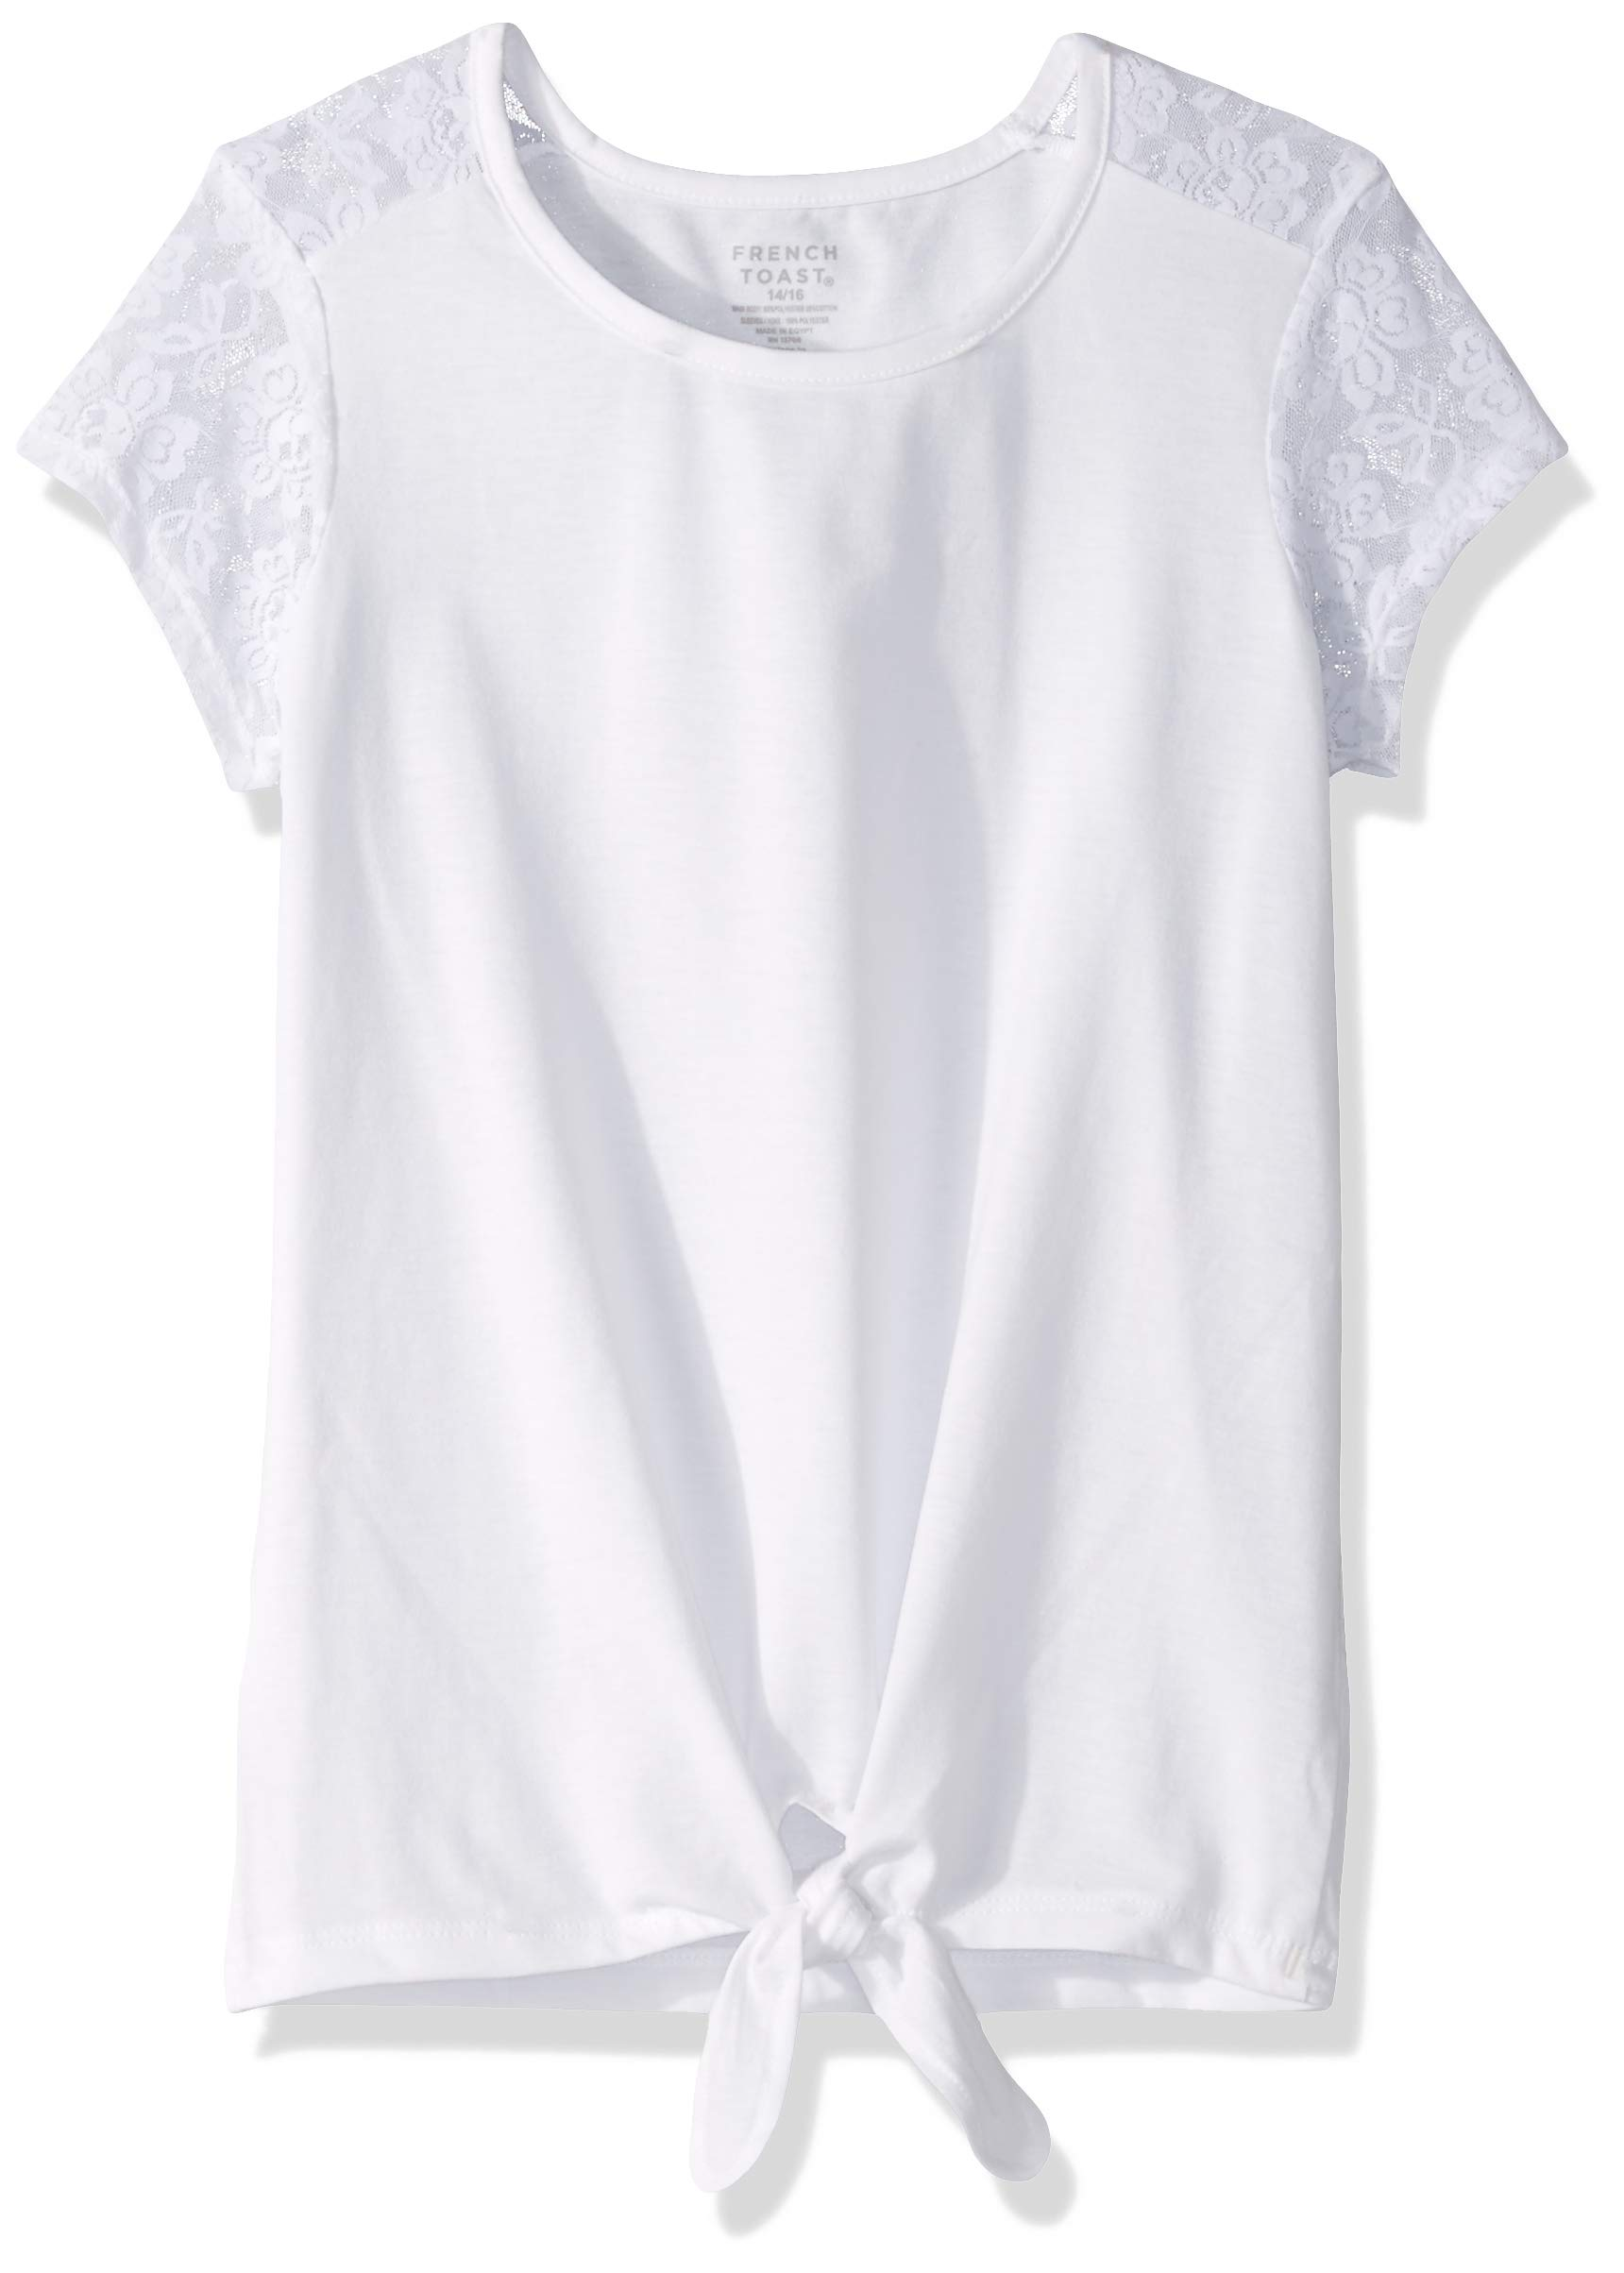 French Toast Girls Short Sleeve Tie Front Top Shirt